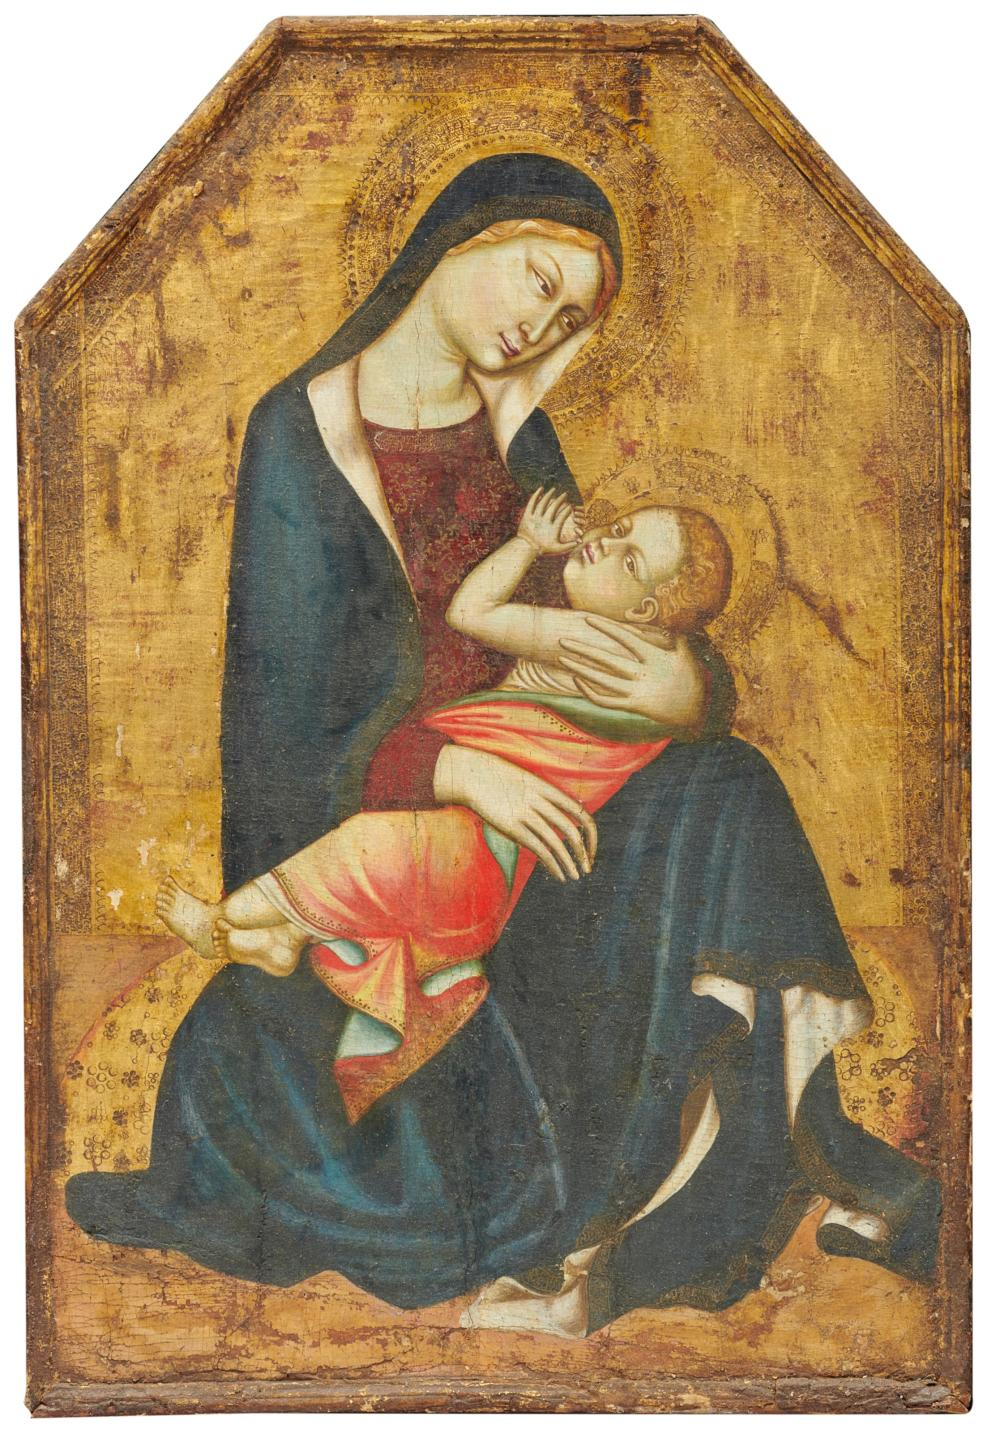 After LIPPO MEMMI, (Italian, ca. 1291-1356), Madonna and Child, oil on panel, 31 1/2 x 21 1/2 in., frame: 41 x 31 in.